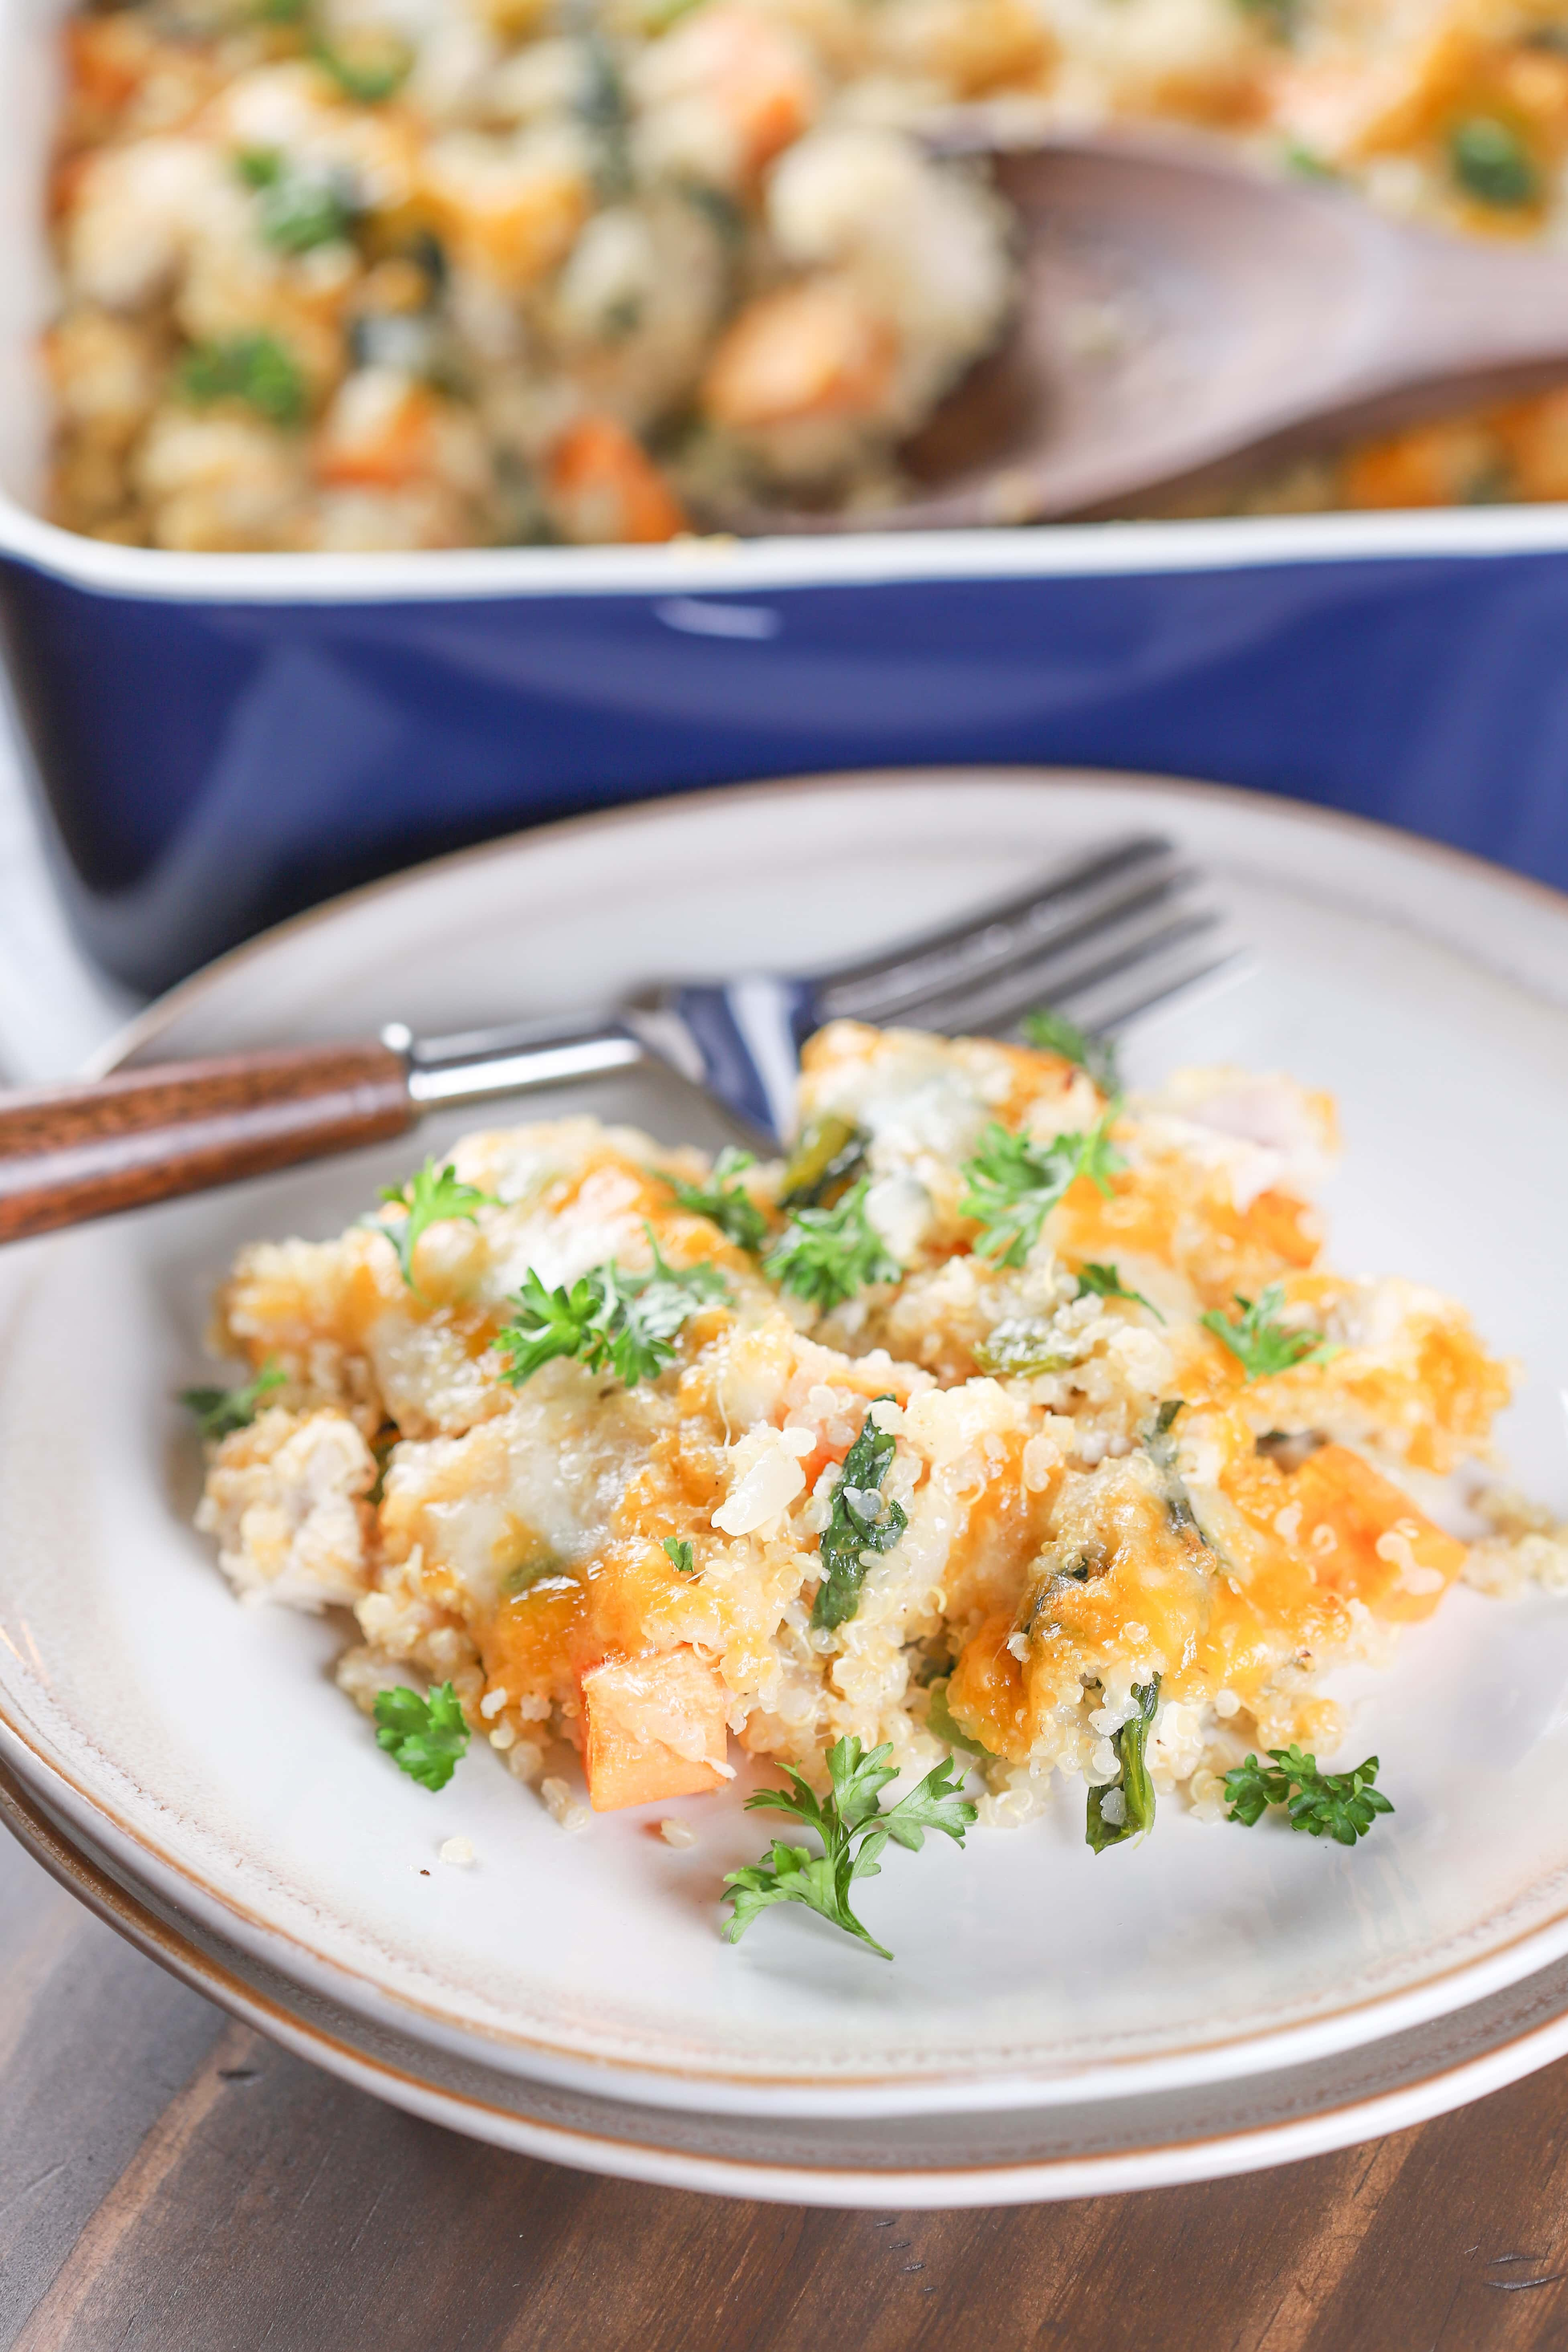 Plated Turkey Sweet Potato Quinoa Bake Recipe from A Kitchen Addiction